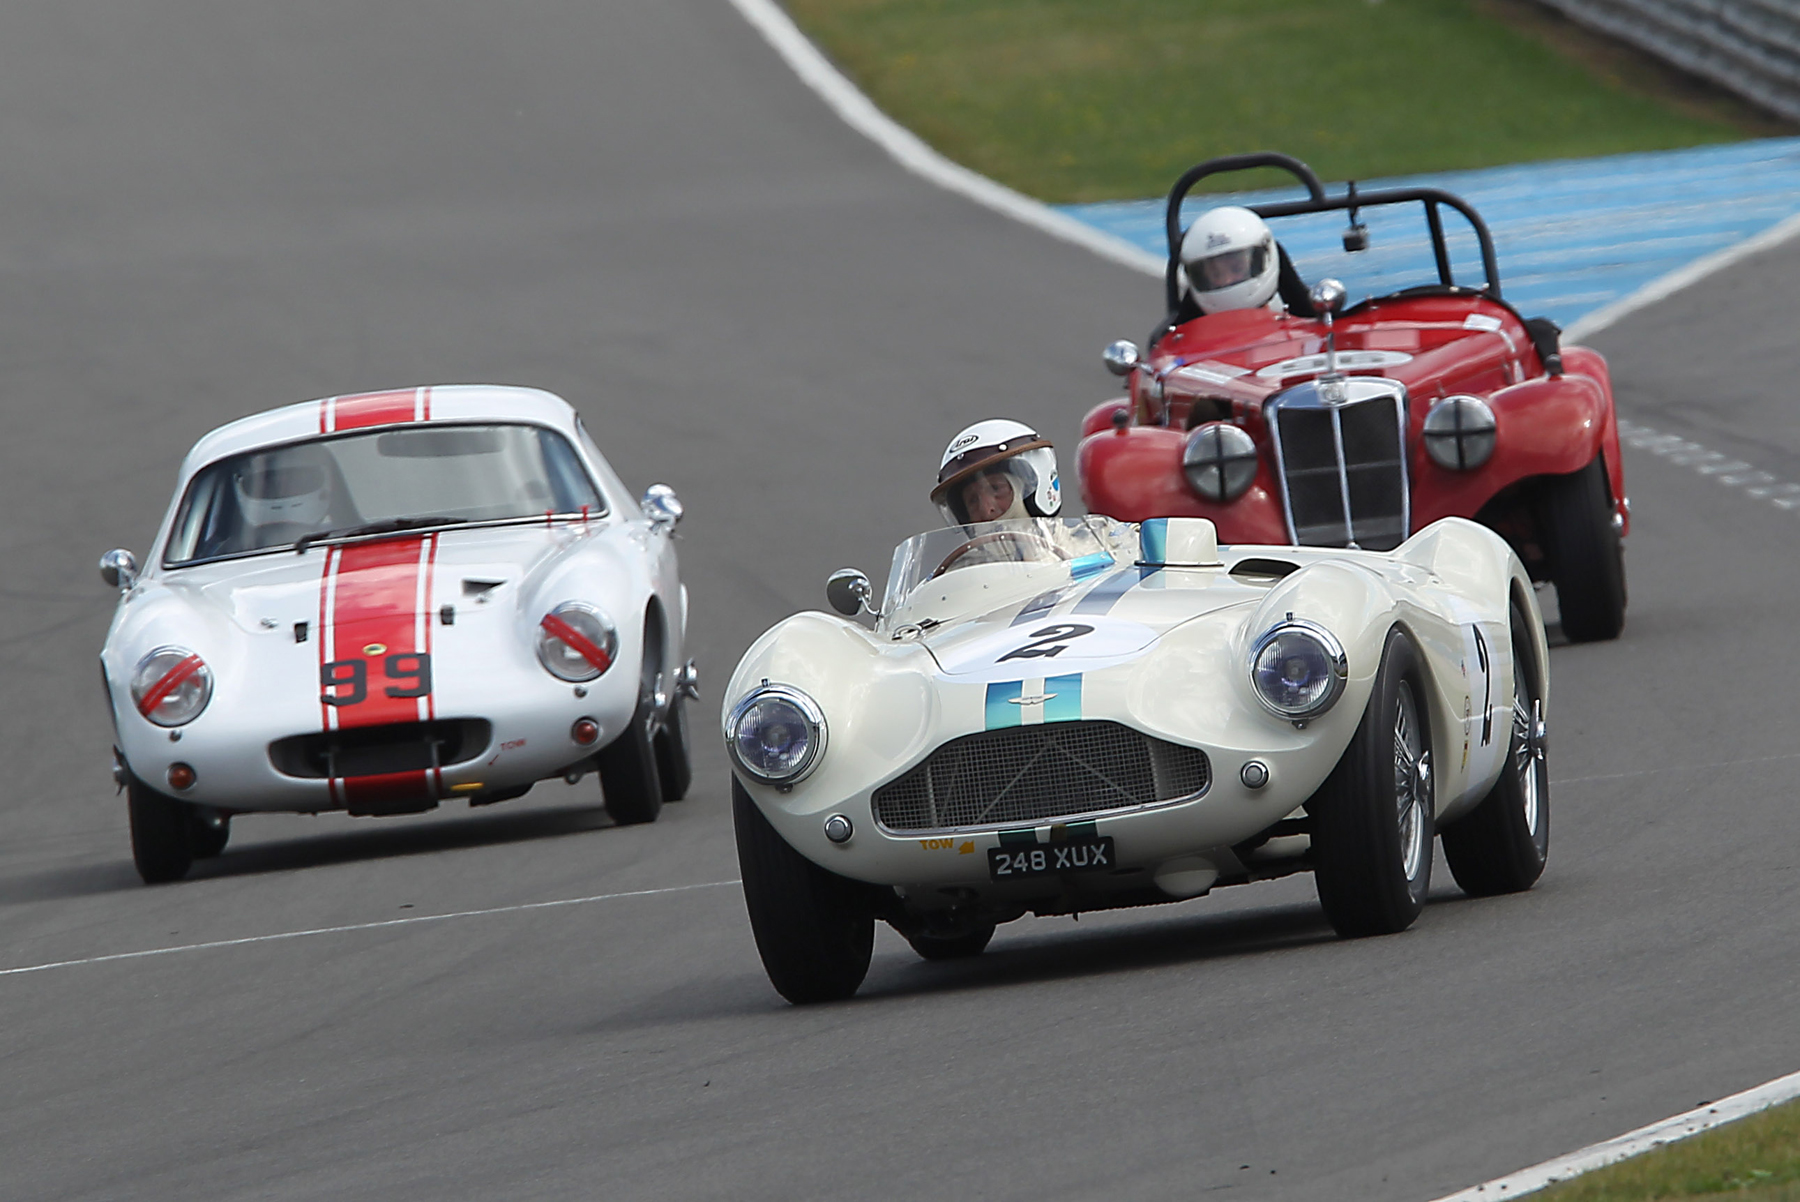 David Bennett took the Aston Martin DB3S to 8th. Here he leads John Waterson's Lotus Elite and Charles Harmers MG TF which later retired. A classic illustration of the variety of shape and development of sports cars during the 1950s.  Photo - Mick Walker